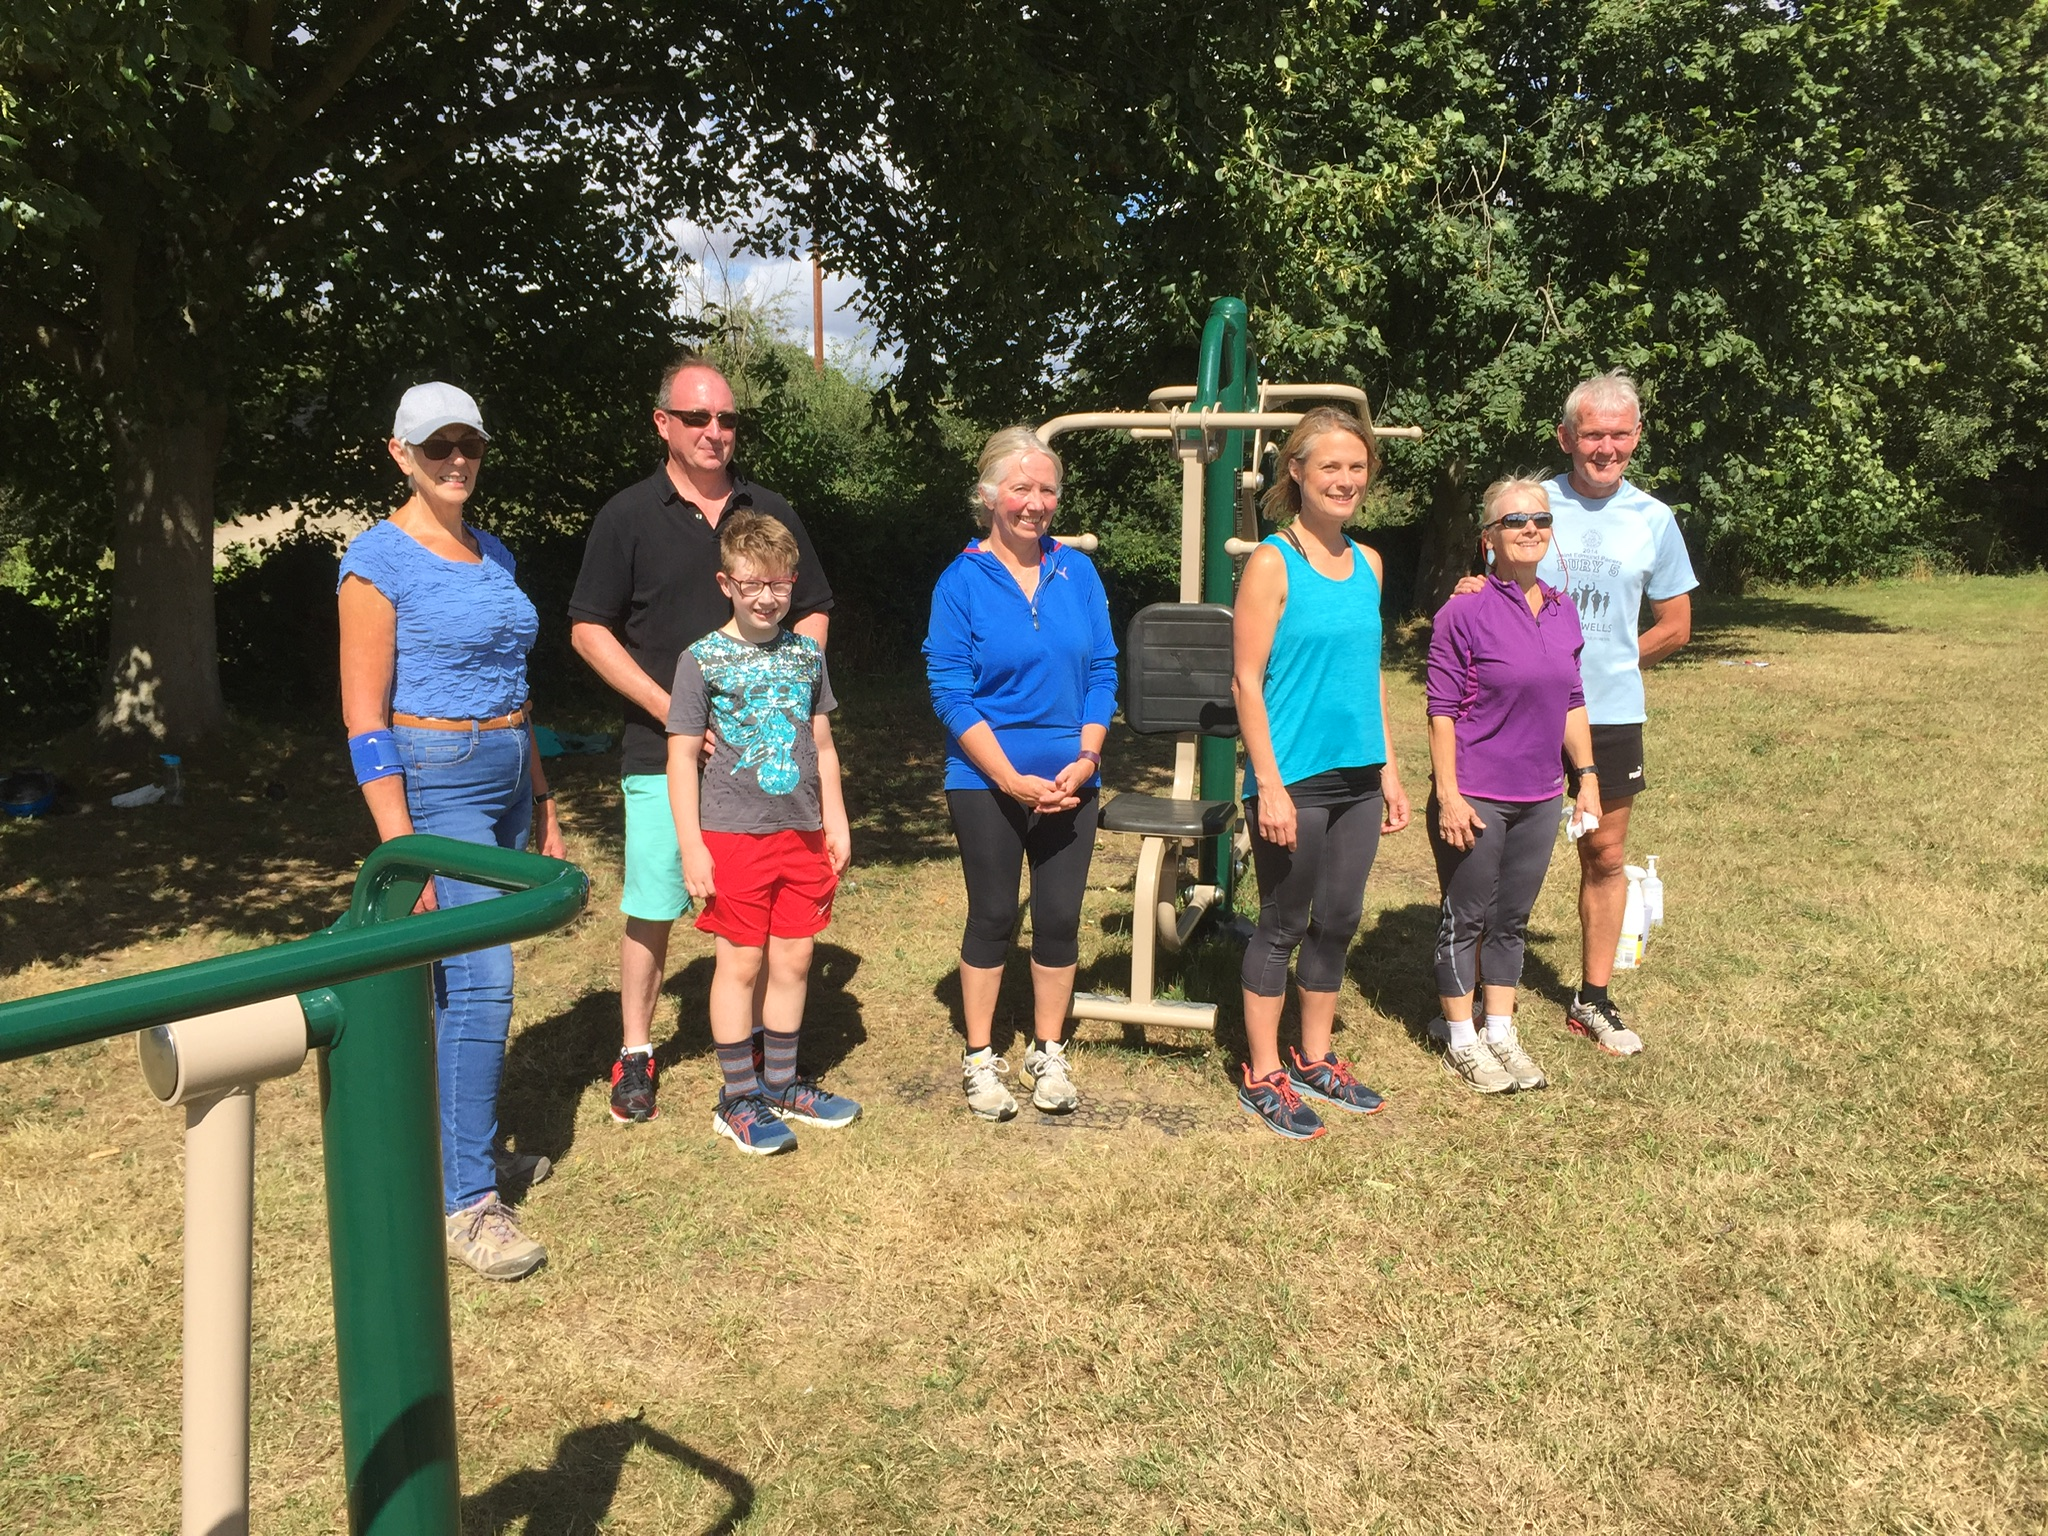 Using the Outdoor Gym in Coddenham